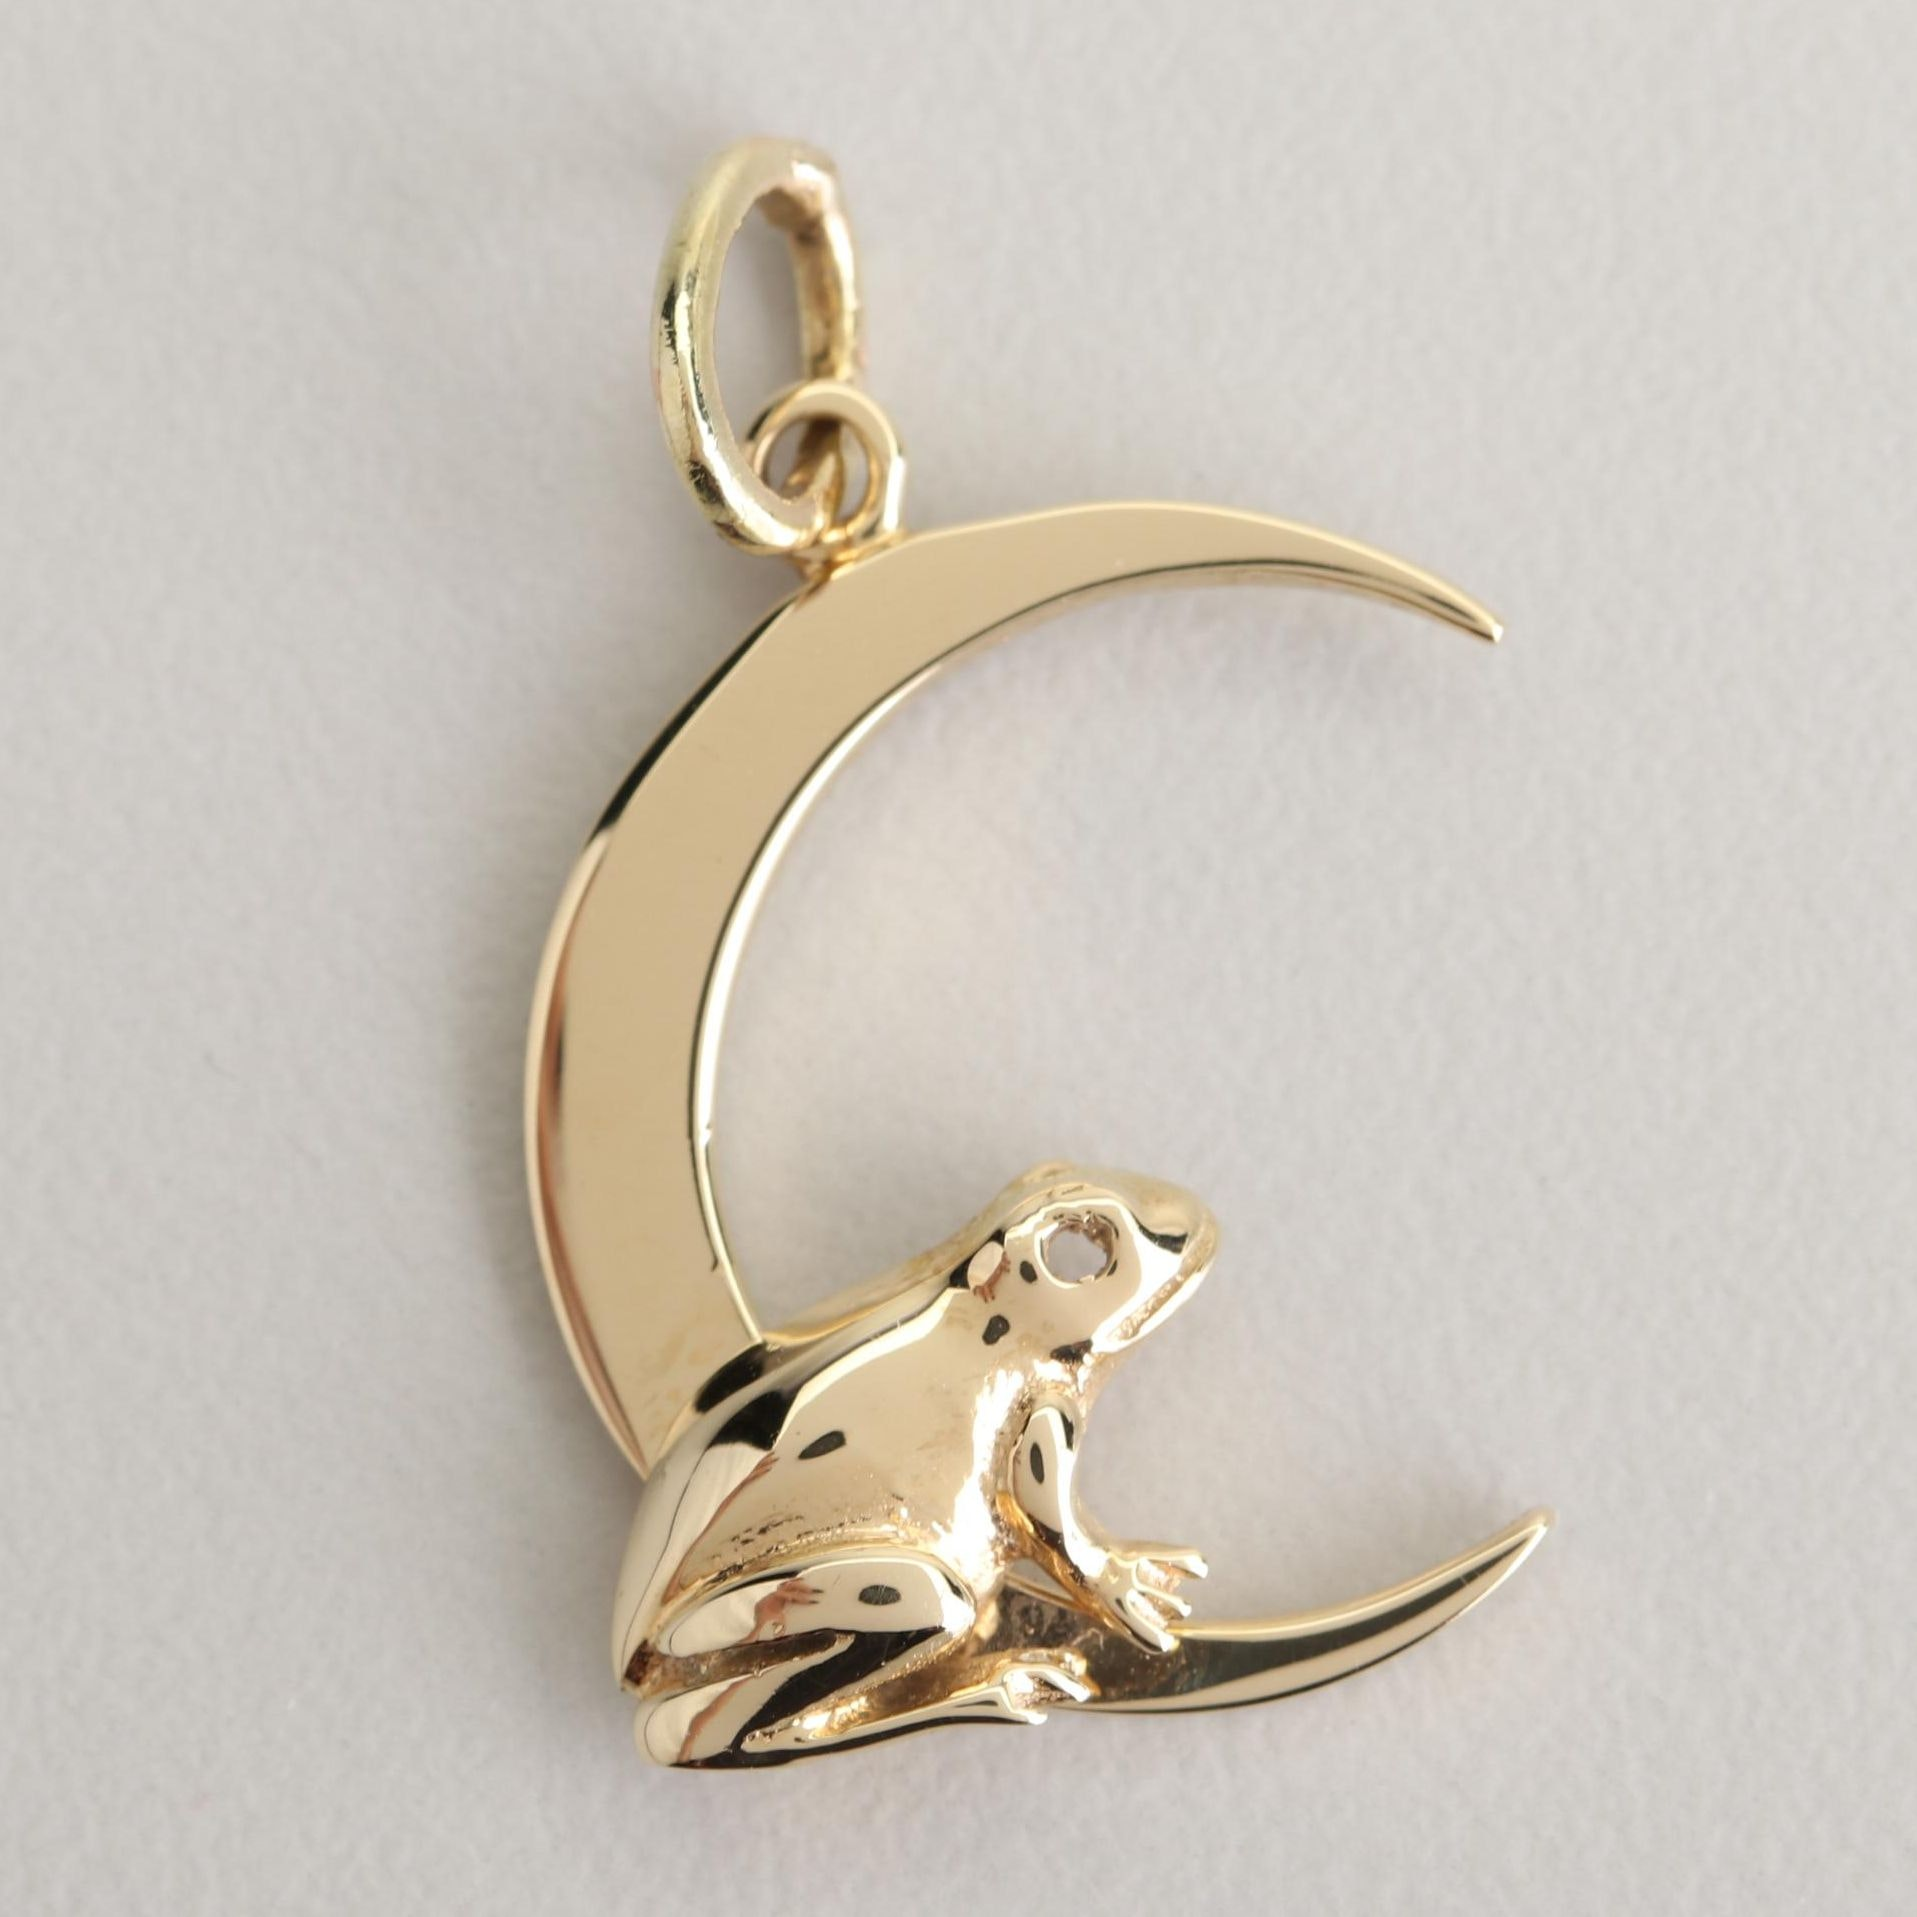 14K Yellow Gold Frog and Crescent Moon Pendant